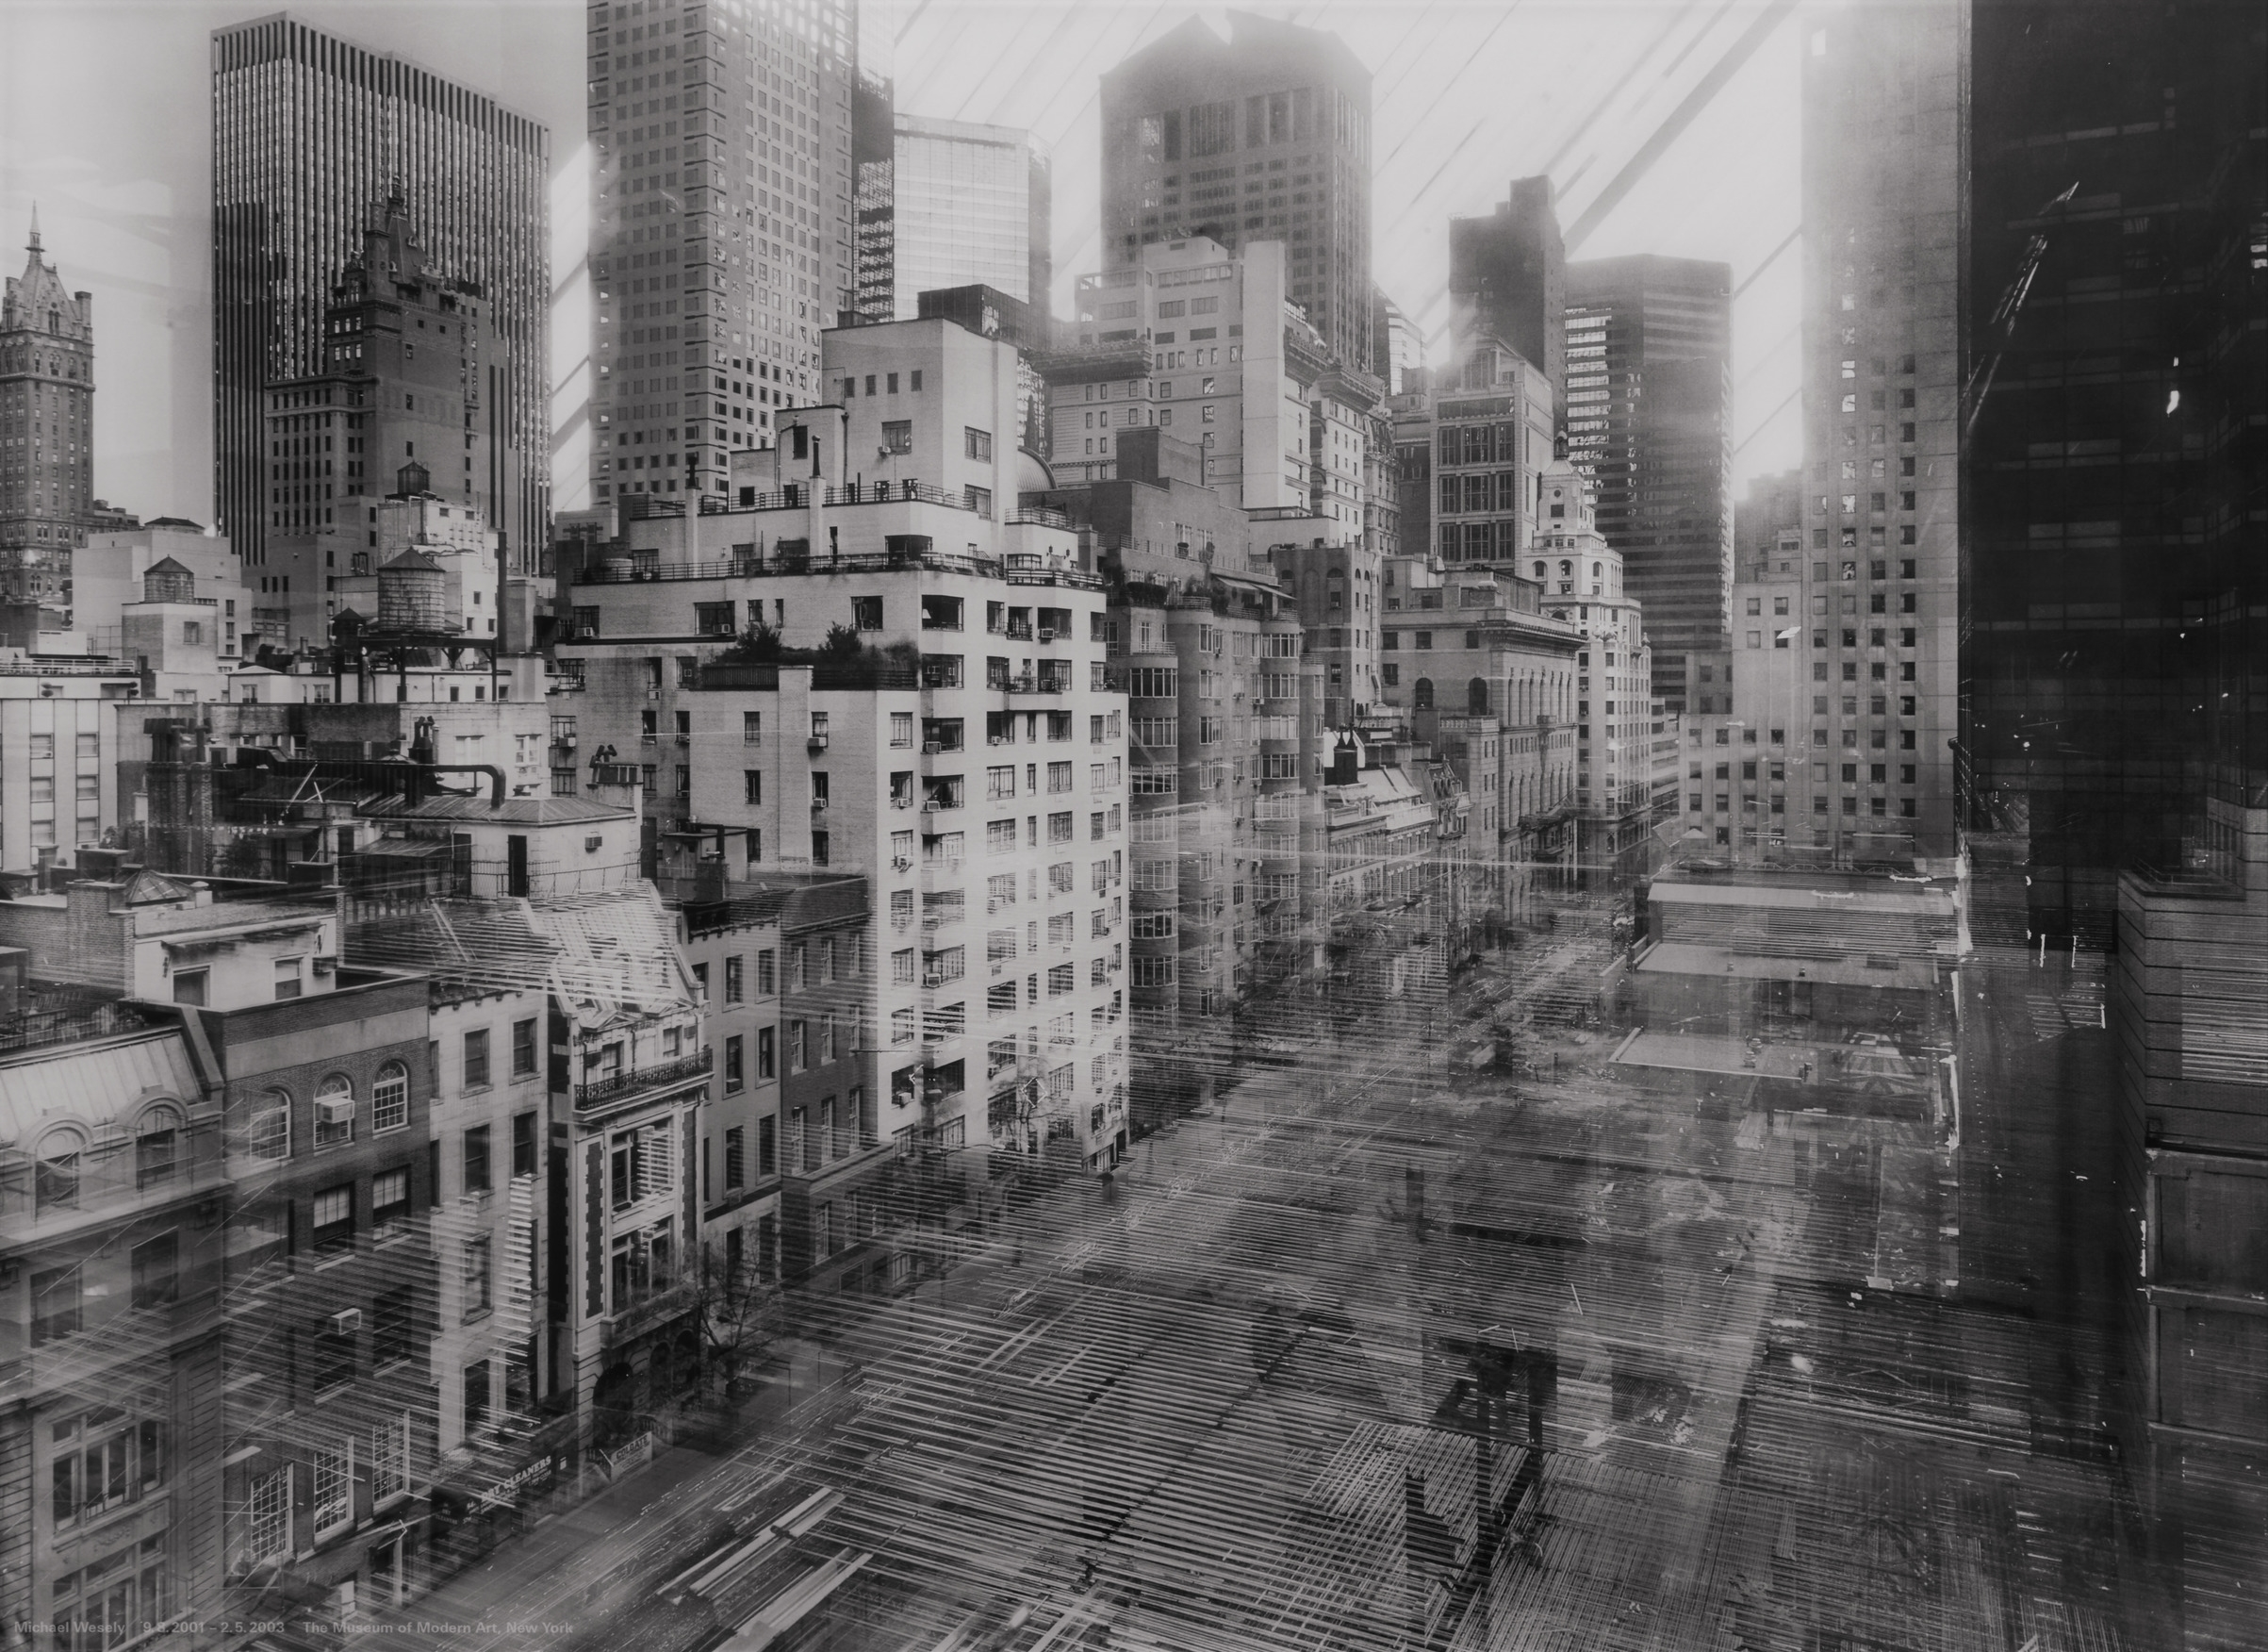 "Michael Wesely.  9 August 2001 - 2 May 2003 The Museum of Modern Art, New York . 2001-03. Chromogenic color print, 40 3/16 x 55 1/8"" (102 x 140 cm). The Museum of Modern Art, NY. Purchase. © 2016 Artists Rights Society (ARS), New York/VG Bild-Kunst, Bonn"